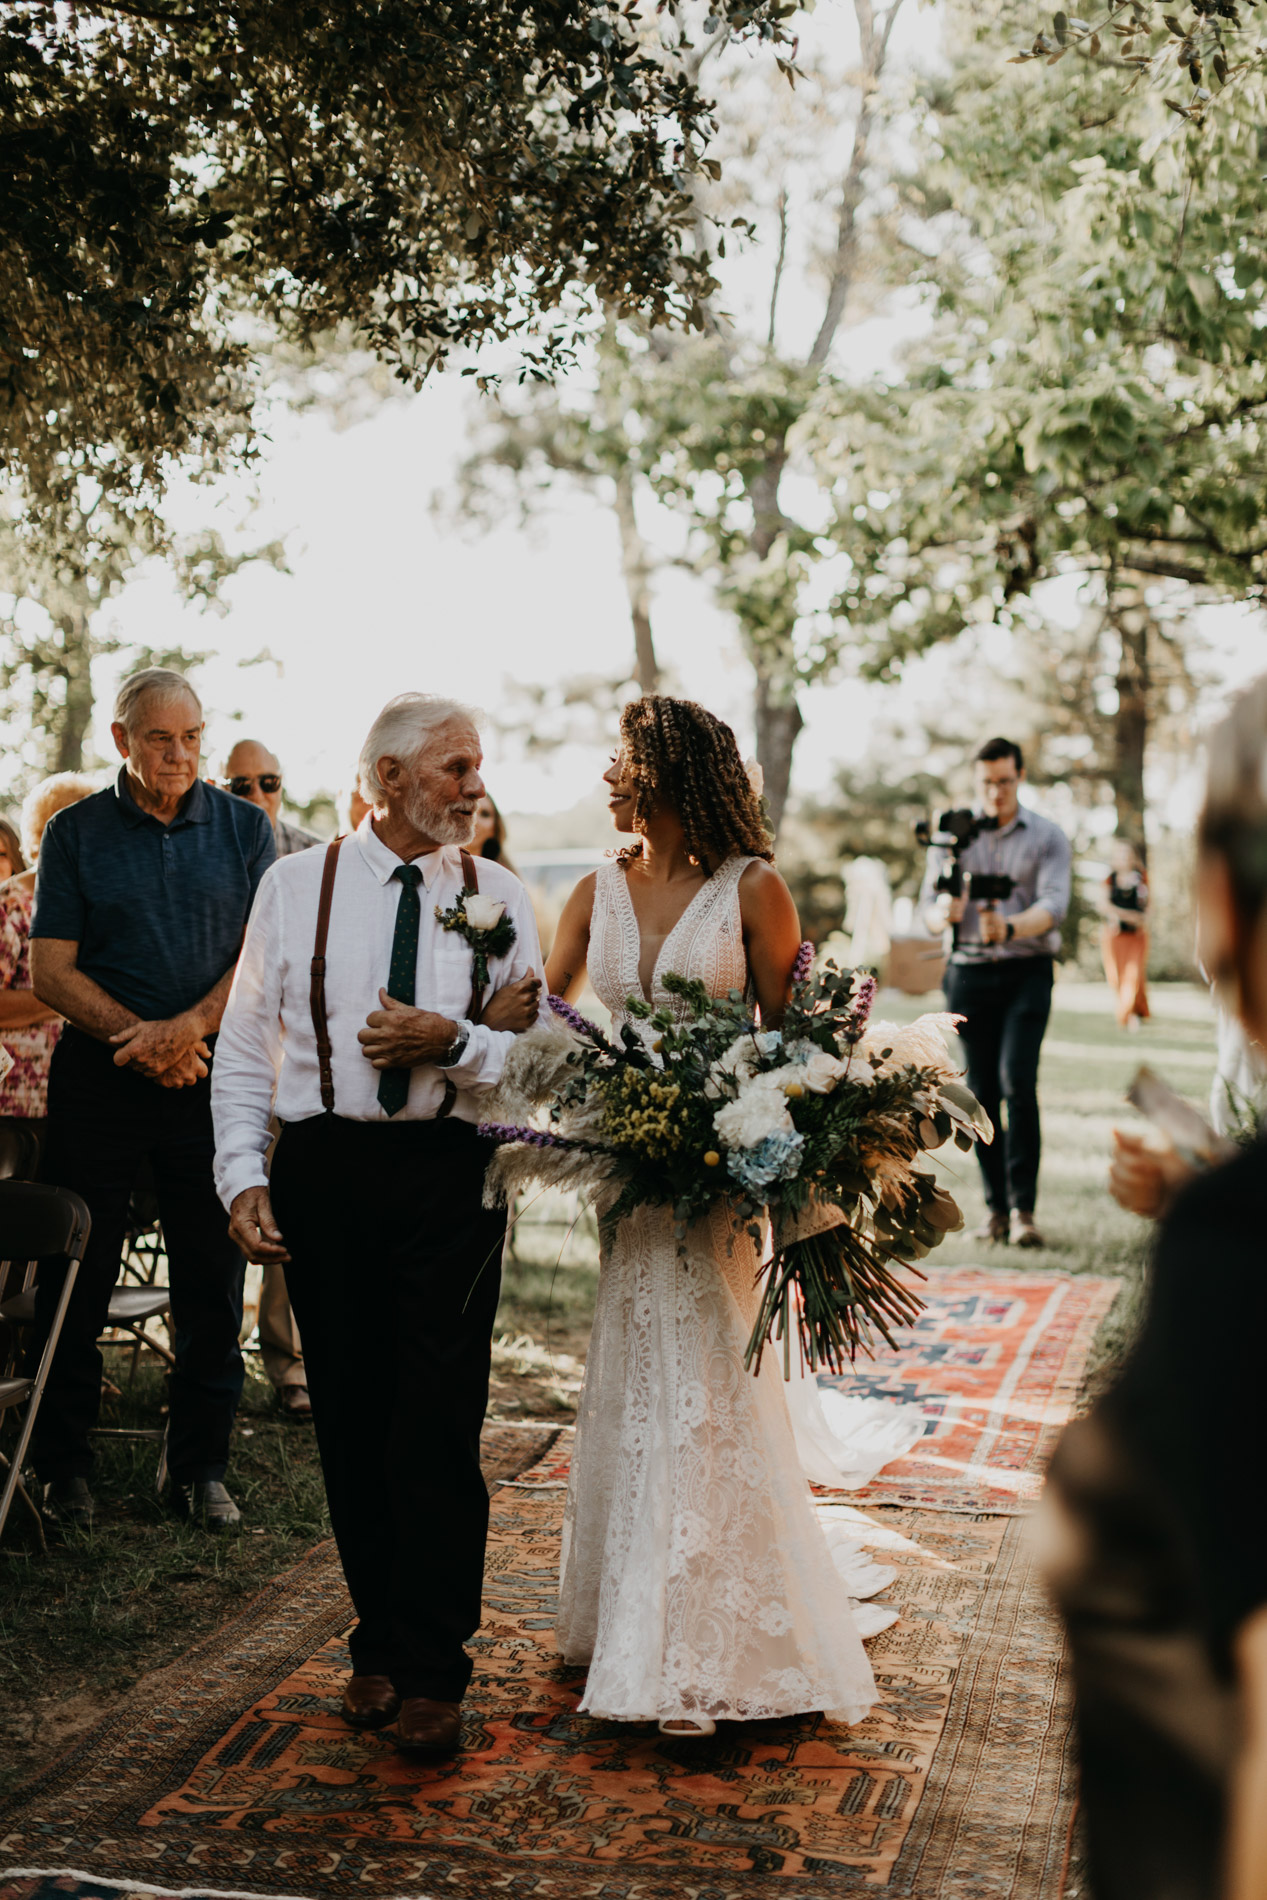 Bride being walked down aisle by grandad